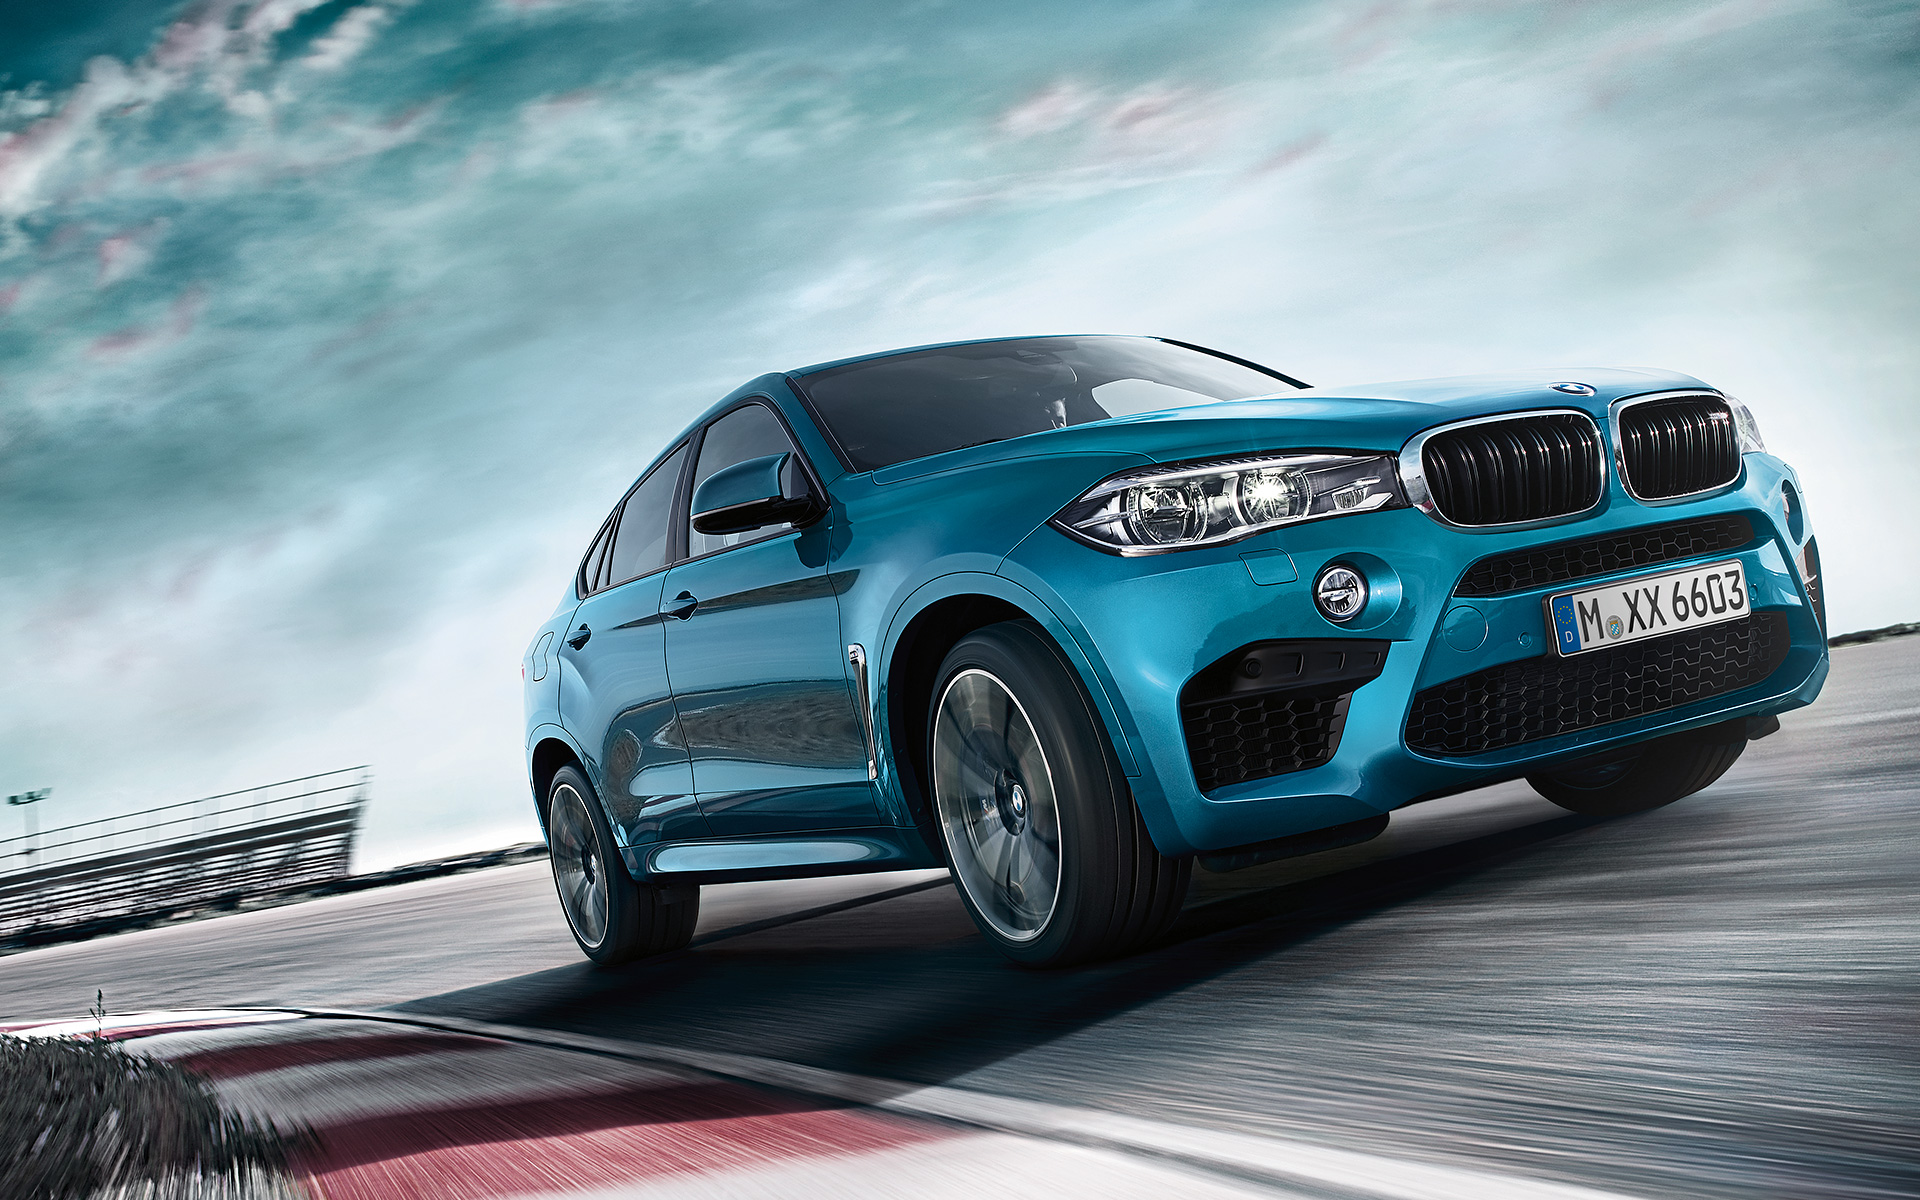 BMW X6 M - Front View racetrack driving